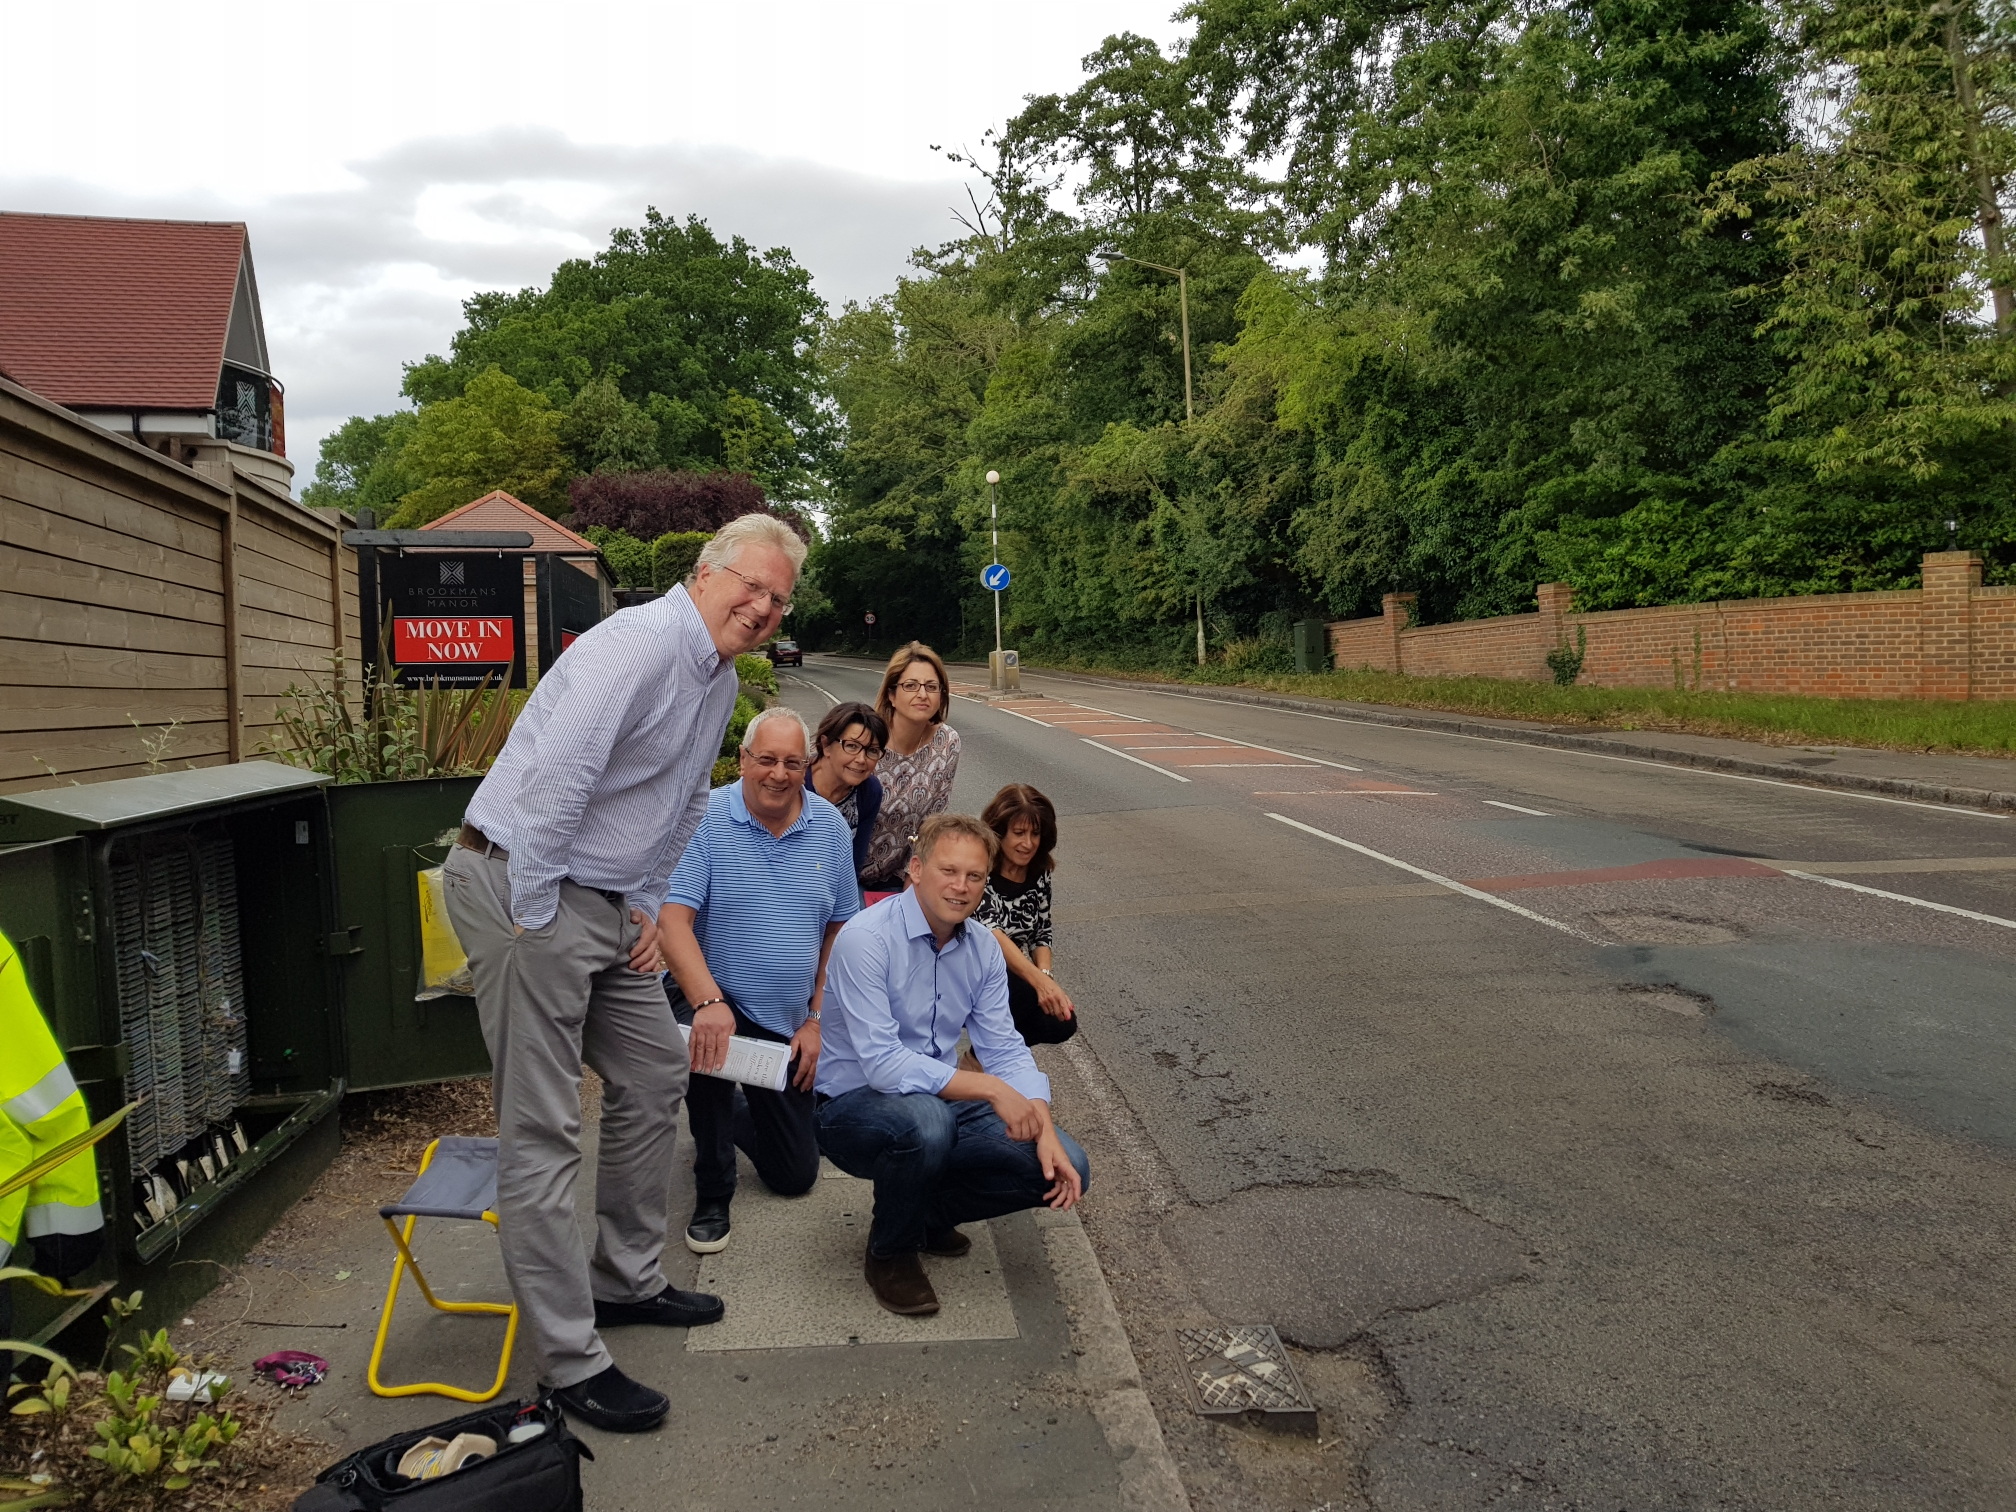 Grant meets local residents over A1000 potholes